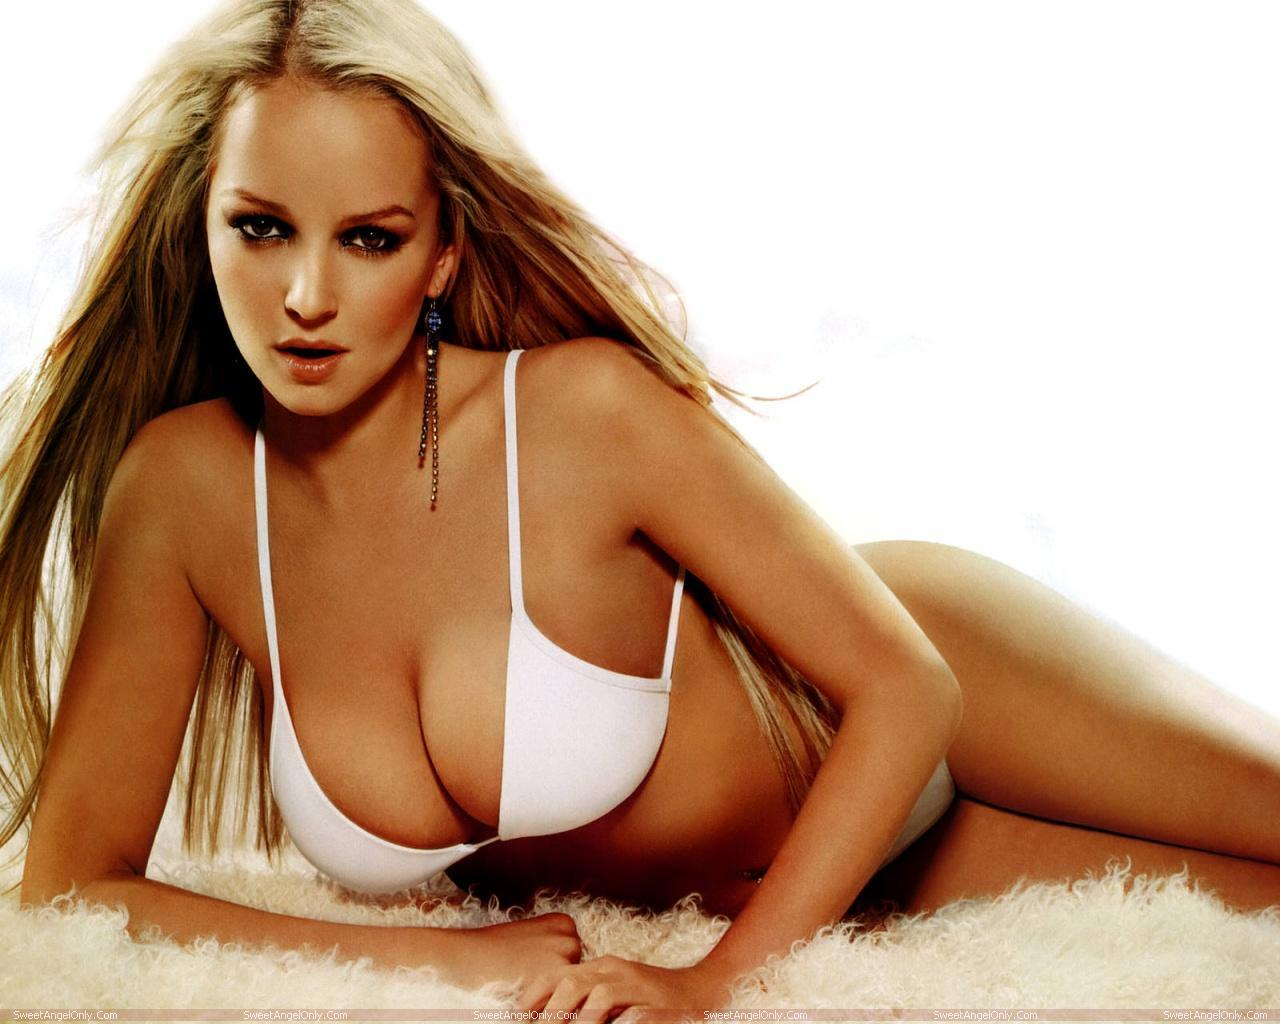 http://2.bp.blogspot.com/-xIbG2FrpRY4/TWZWFqsvD_I/AAAAAAAAEog/ZEZ2XYn5gHI/s1600/actress_jennifer_ellison_hot_wallpapers_in_bikini_sweetangelonly_17.jpg